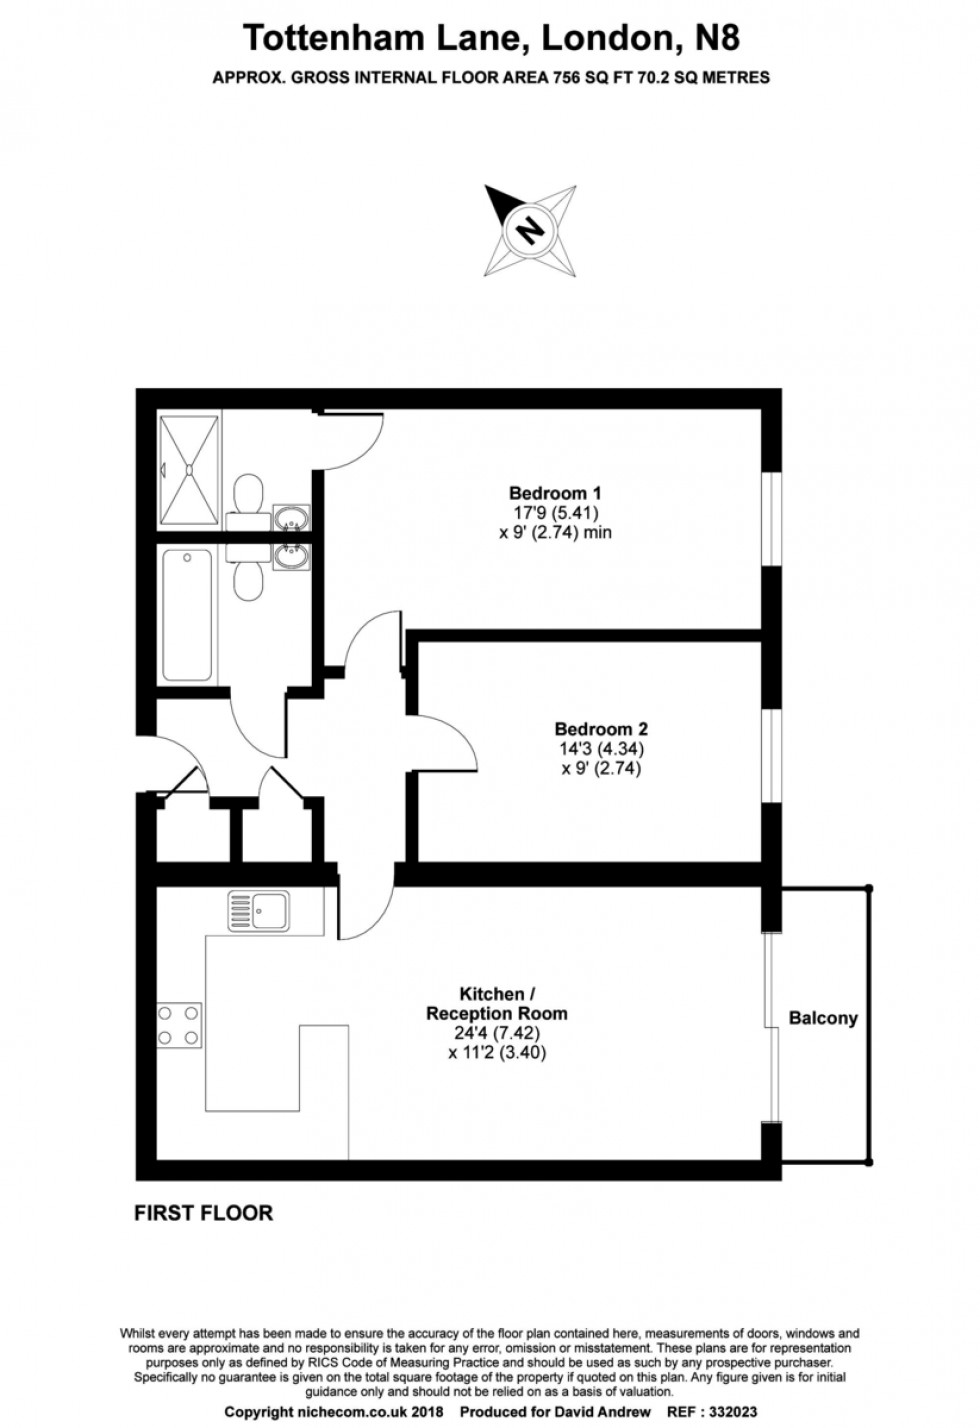 Floorplan for Tottenham Lane, London